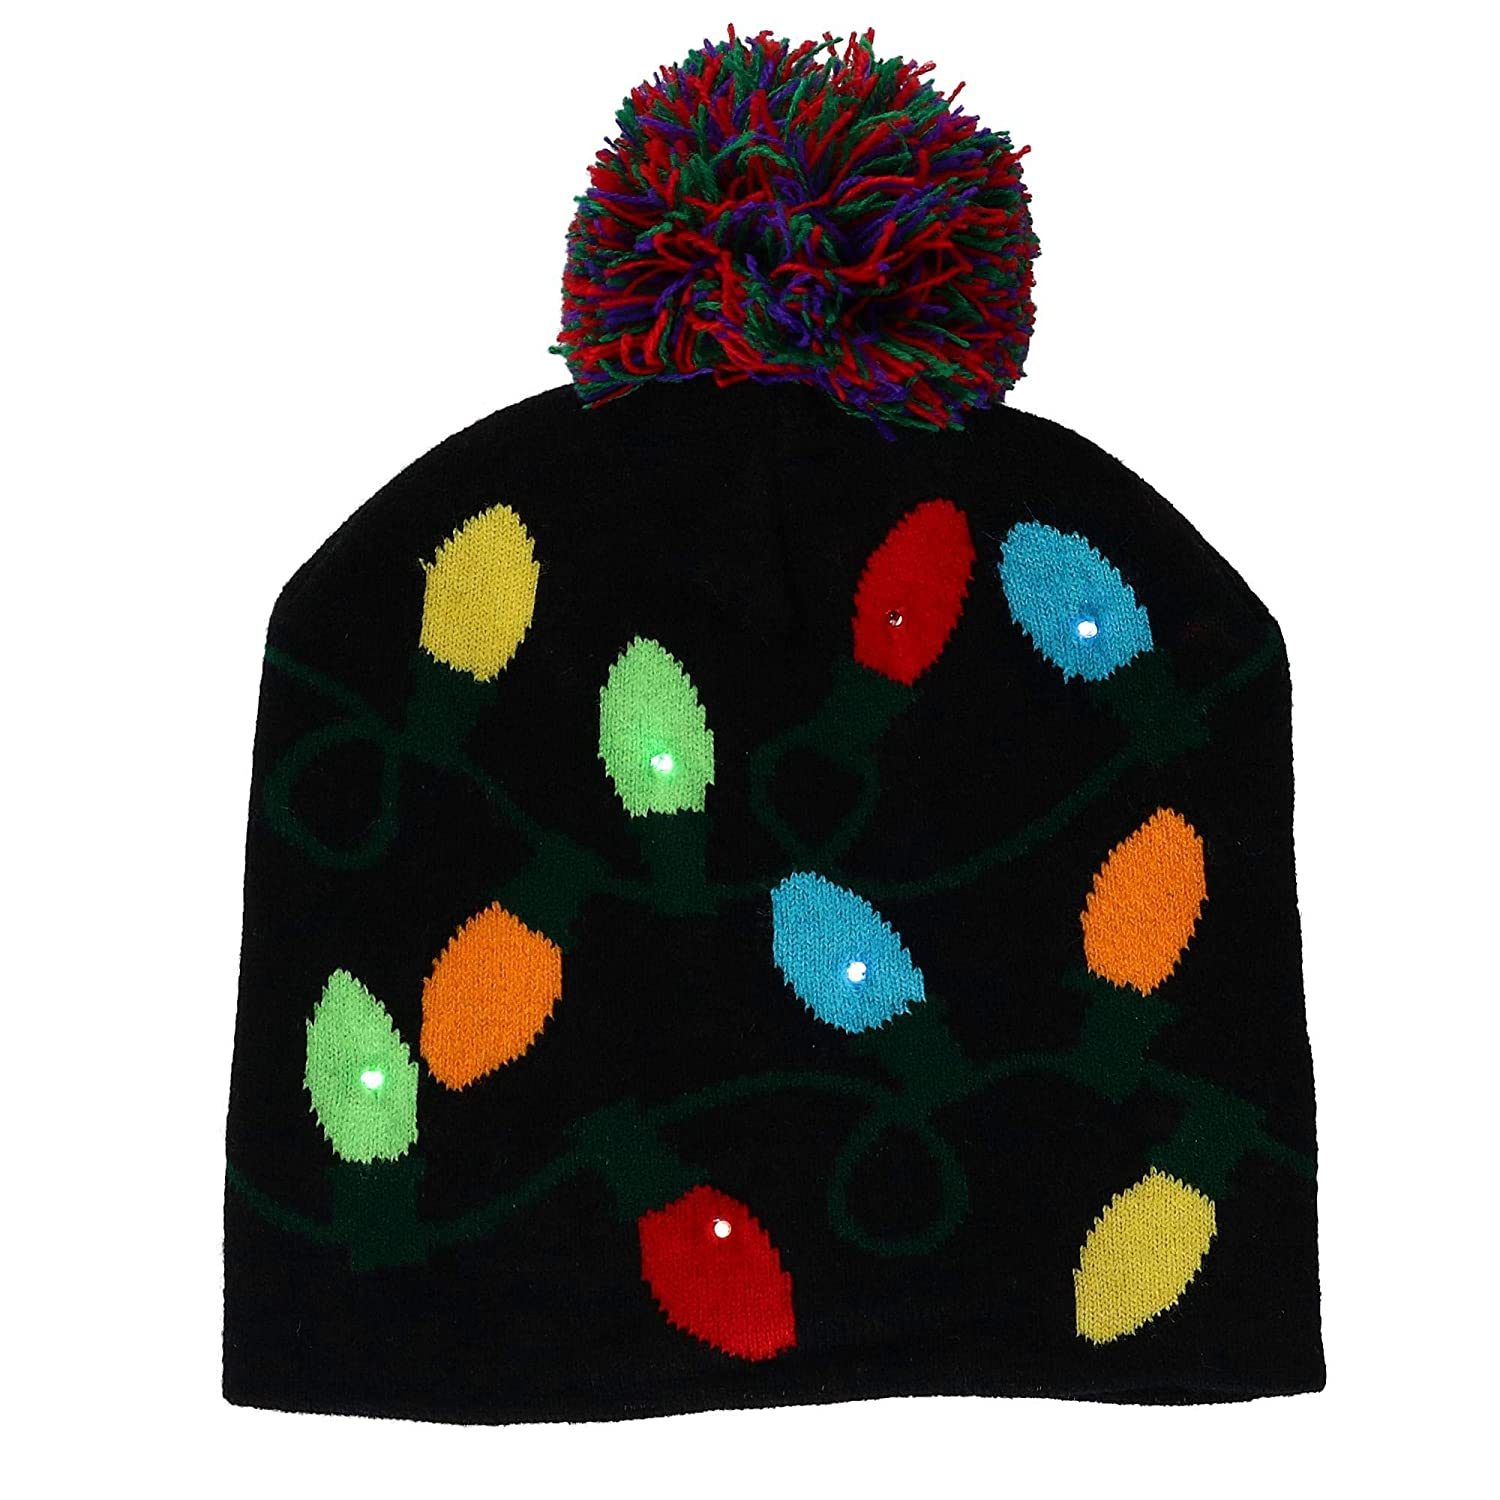 0aed4077f DM Lotsa Lites LED Flashing Holiday Knitted Hat Light up Blinking Beanie